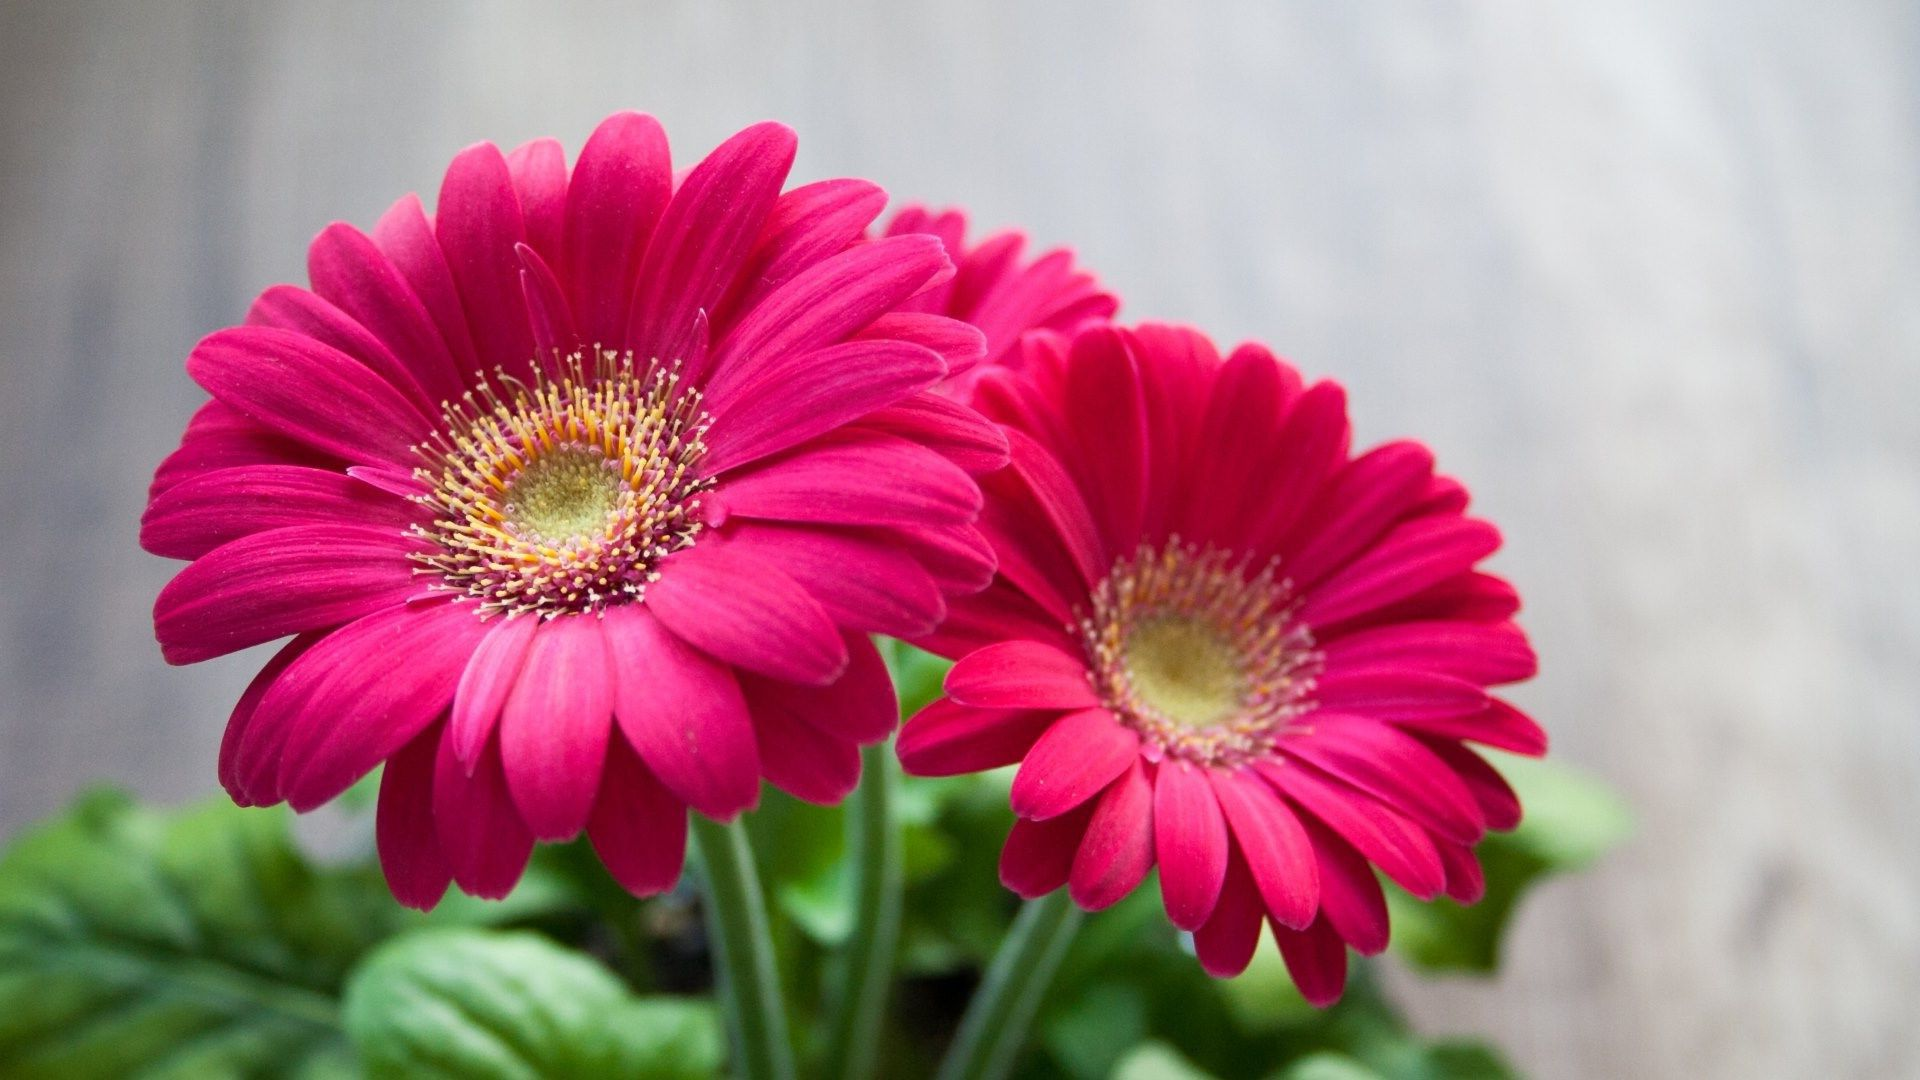 Best Hd Wallpapers For Laptop 1080p With Pink Daisy Flower Images Hd Wallpapers Wallpapers Download High Resolution Wallpapers Flower Images Hd Hd Flower Wallpaper Hd Wallpapers For Laptop